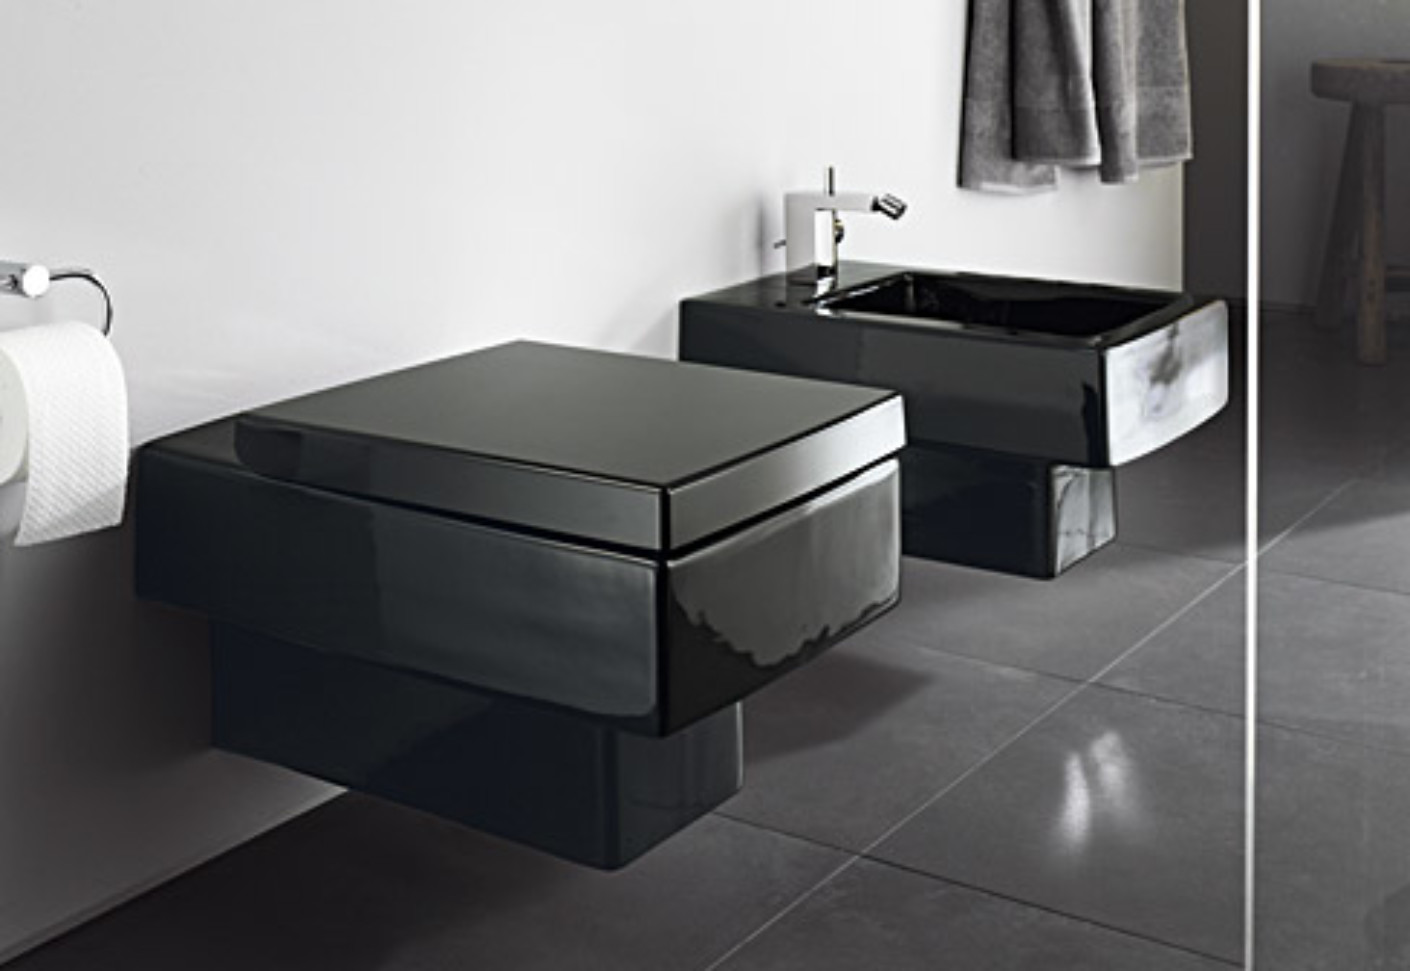 Vero Black wall toilet by Duravit | STYLEPARK